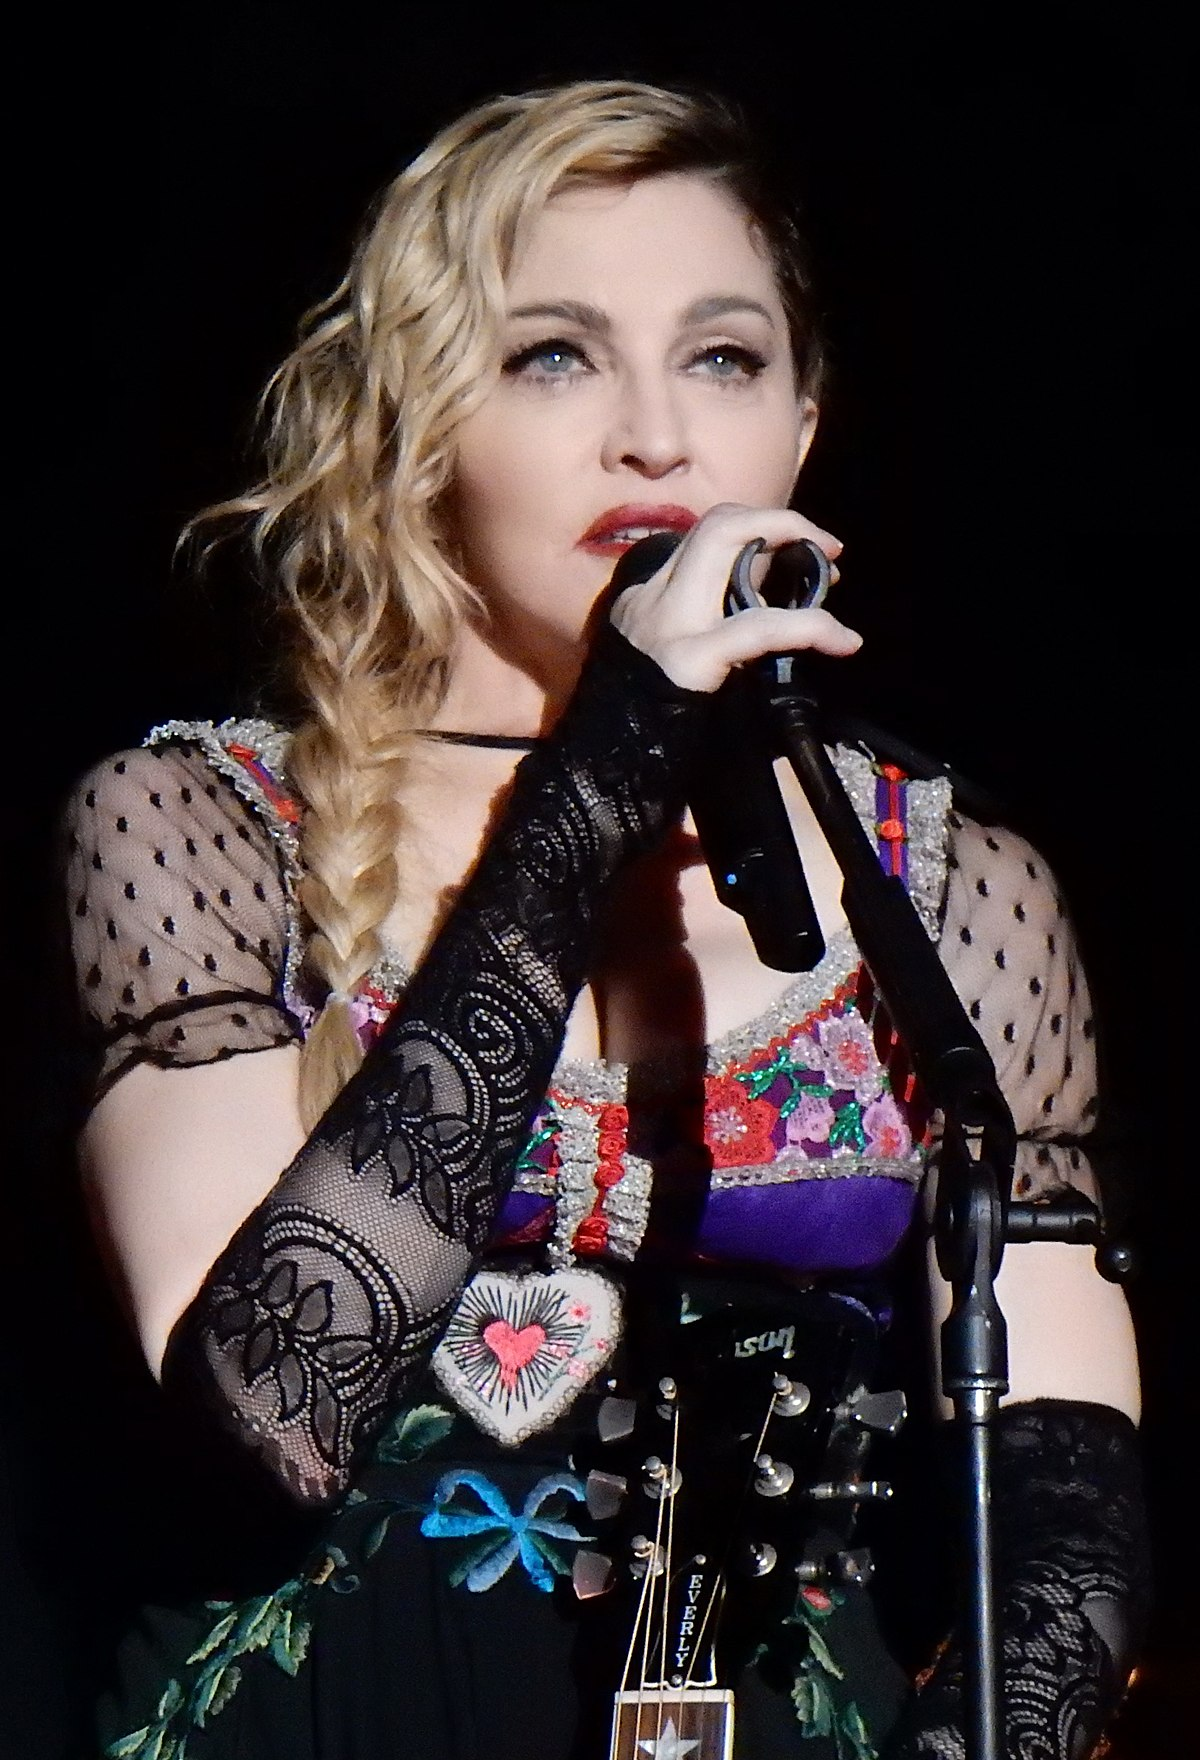 Madonna (entertainer) - Wikipedia